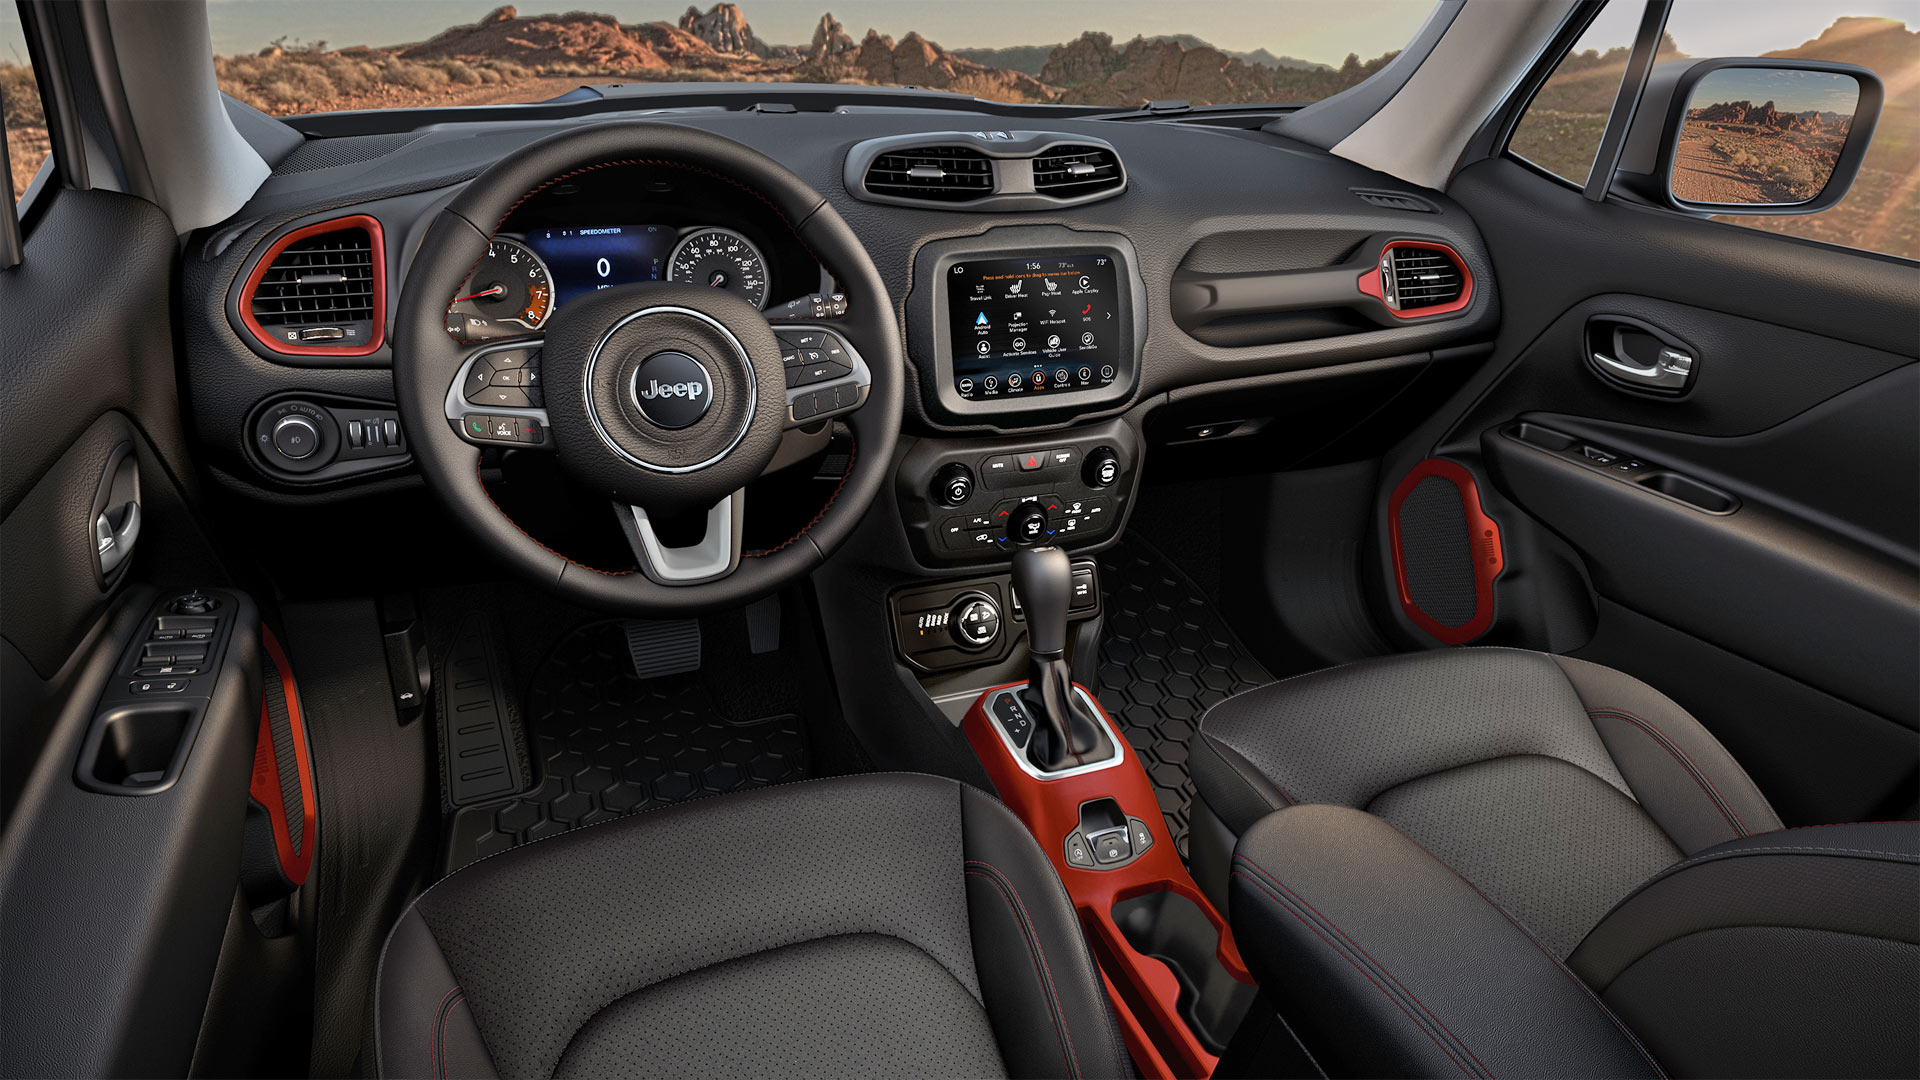 Jeep Renegade gets a new engine for 2019 model year ...